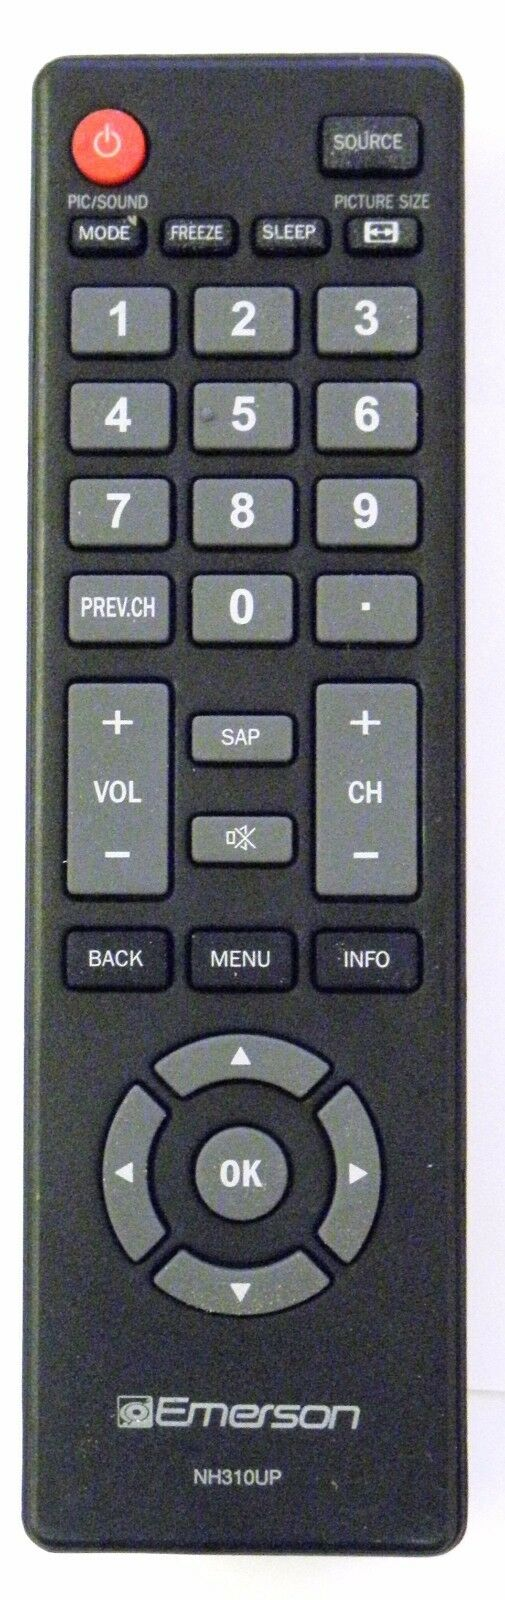 EMERSON NH310UP TV Remote Control - Brand New Original Emers